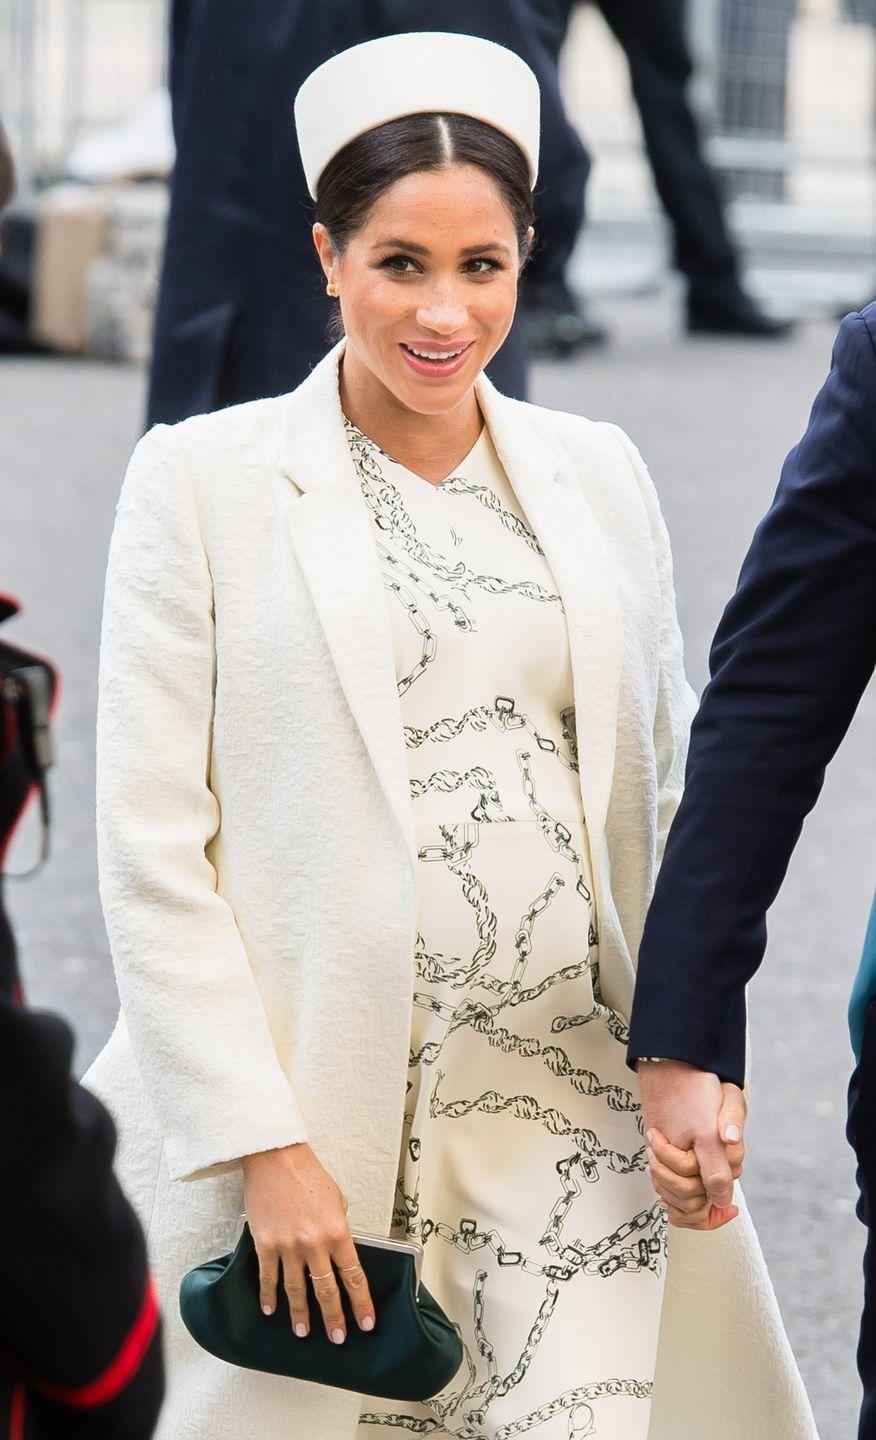 """<p>Unlike royal women before her, Meghan chose not to share any info about her birth plan with the public, and instead released a statement, <a href=""""https://www.cosmopolitan.com/entertainment/a27110108/meghan-markle-breaking-royal-protocol-birth-plan/"""" rel=""""nofollow noopener"""" target=""""_blank"""" data-ylk=""""slk:saying"""" class=""""link rapid-noclick-resp"""">saying</a>, """"Their Royal Highnesses have taken a personal decision to keep the plans around the arrival of their baby private. The Duke and Duchess look forward to sharing the exciting news with everyone once they have had an opportunity to celebrate privately as a new family.""""<br></p>"""